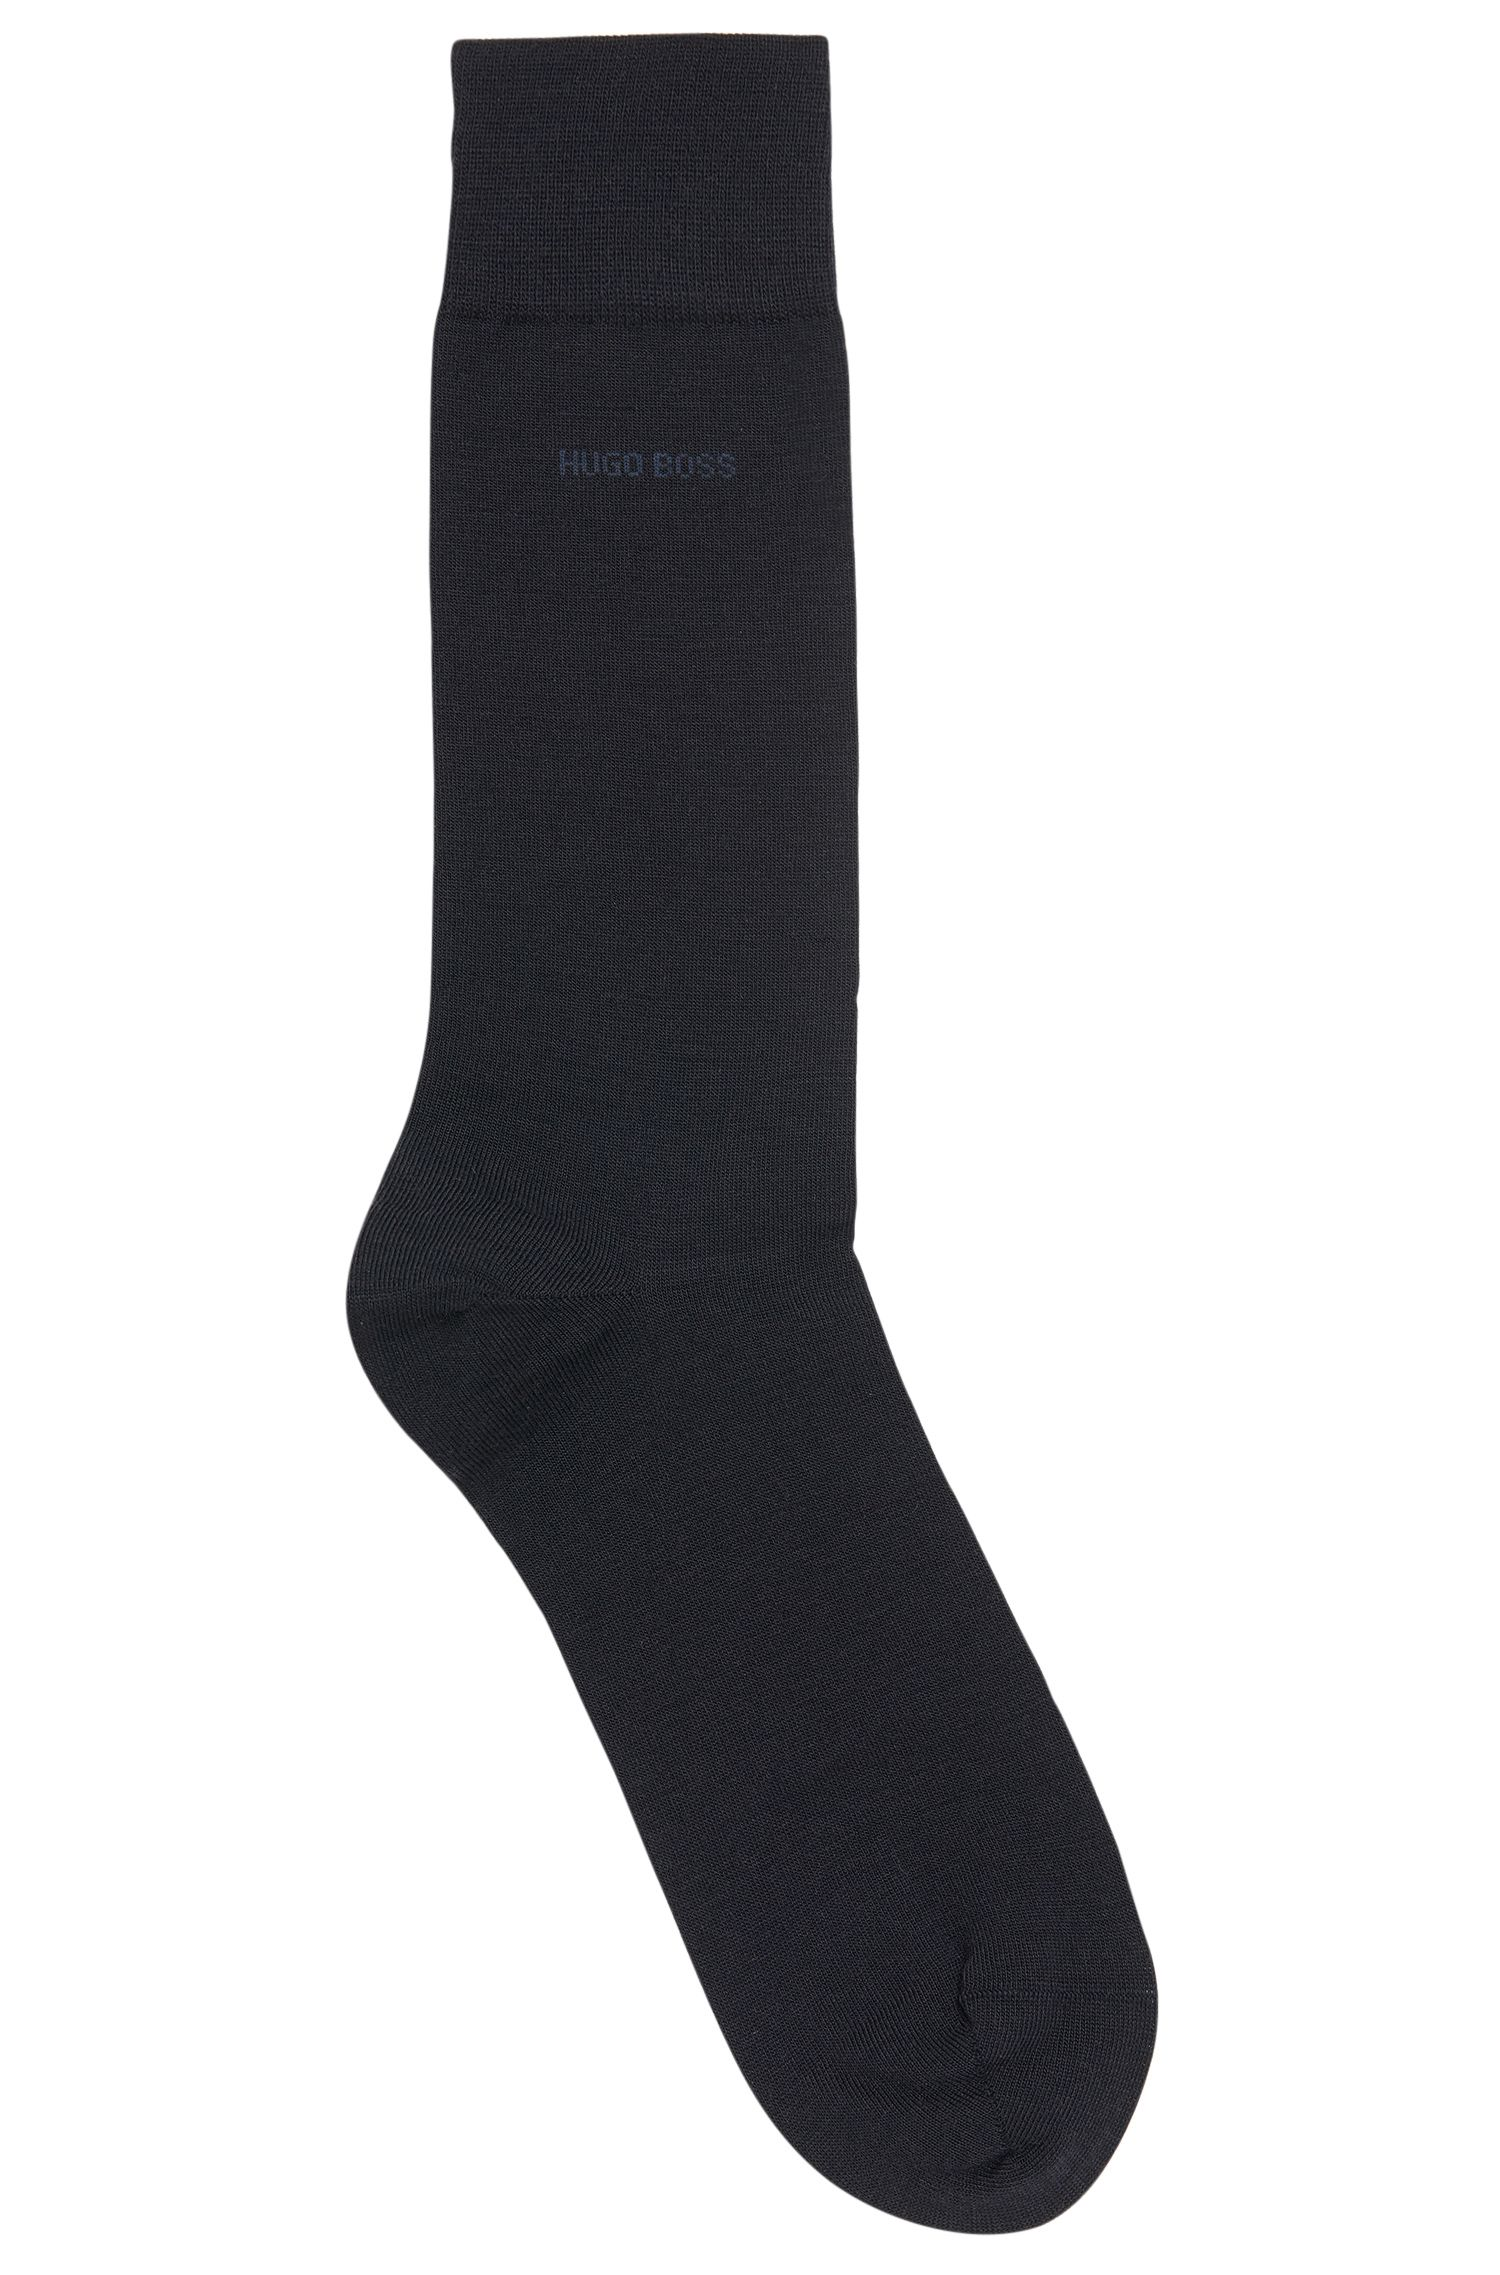 Merino wool and cotton blend socks